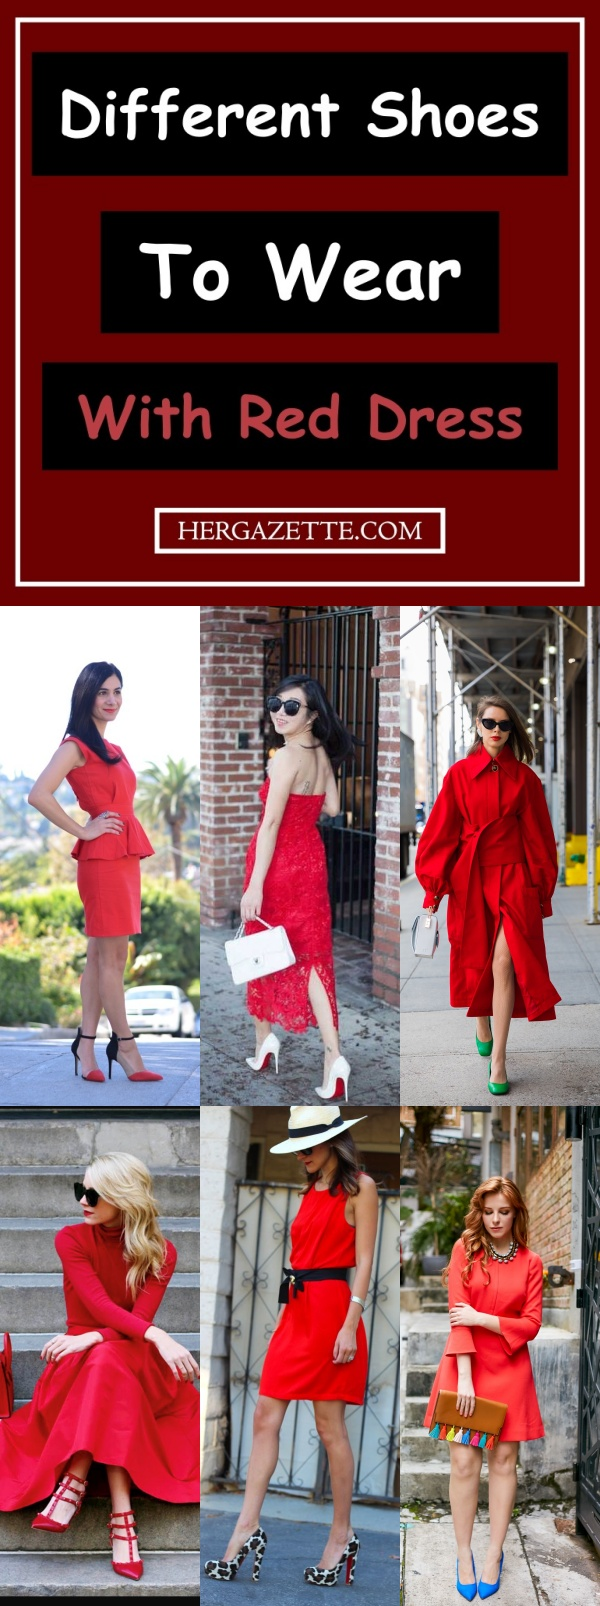 shoes to wear with red dress